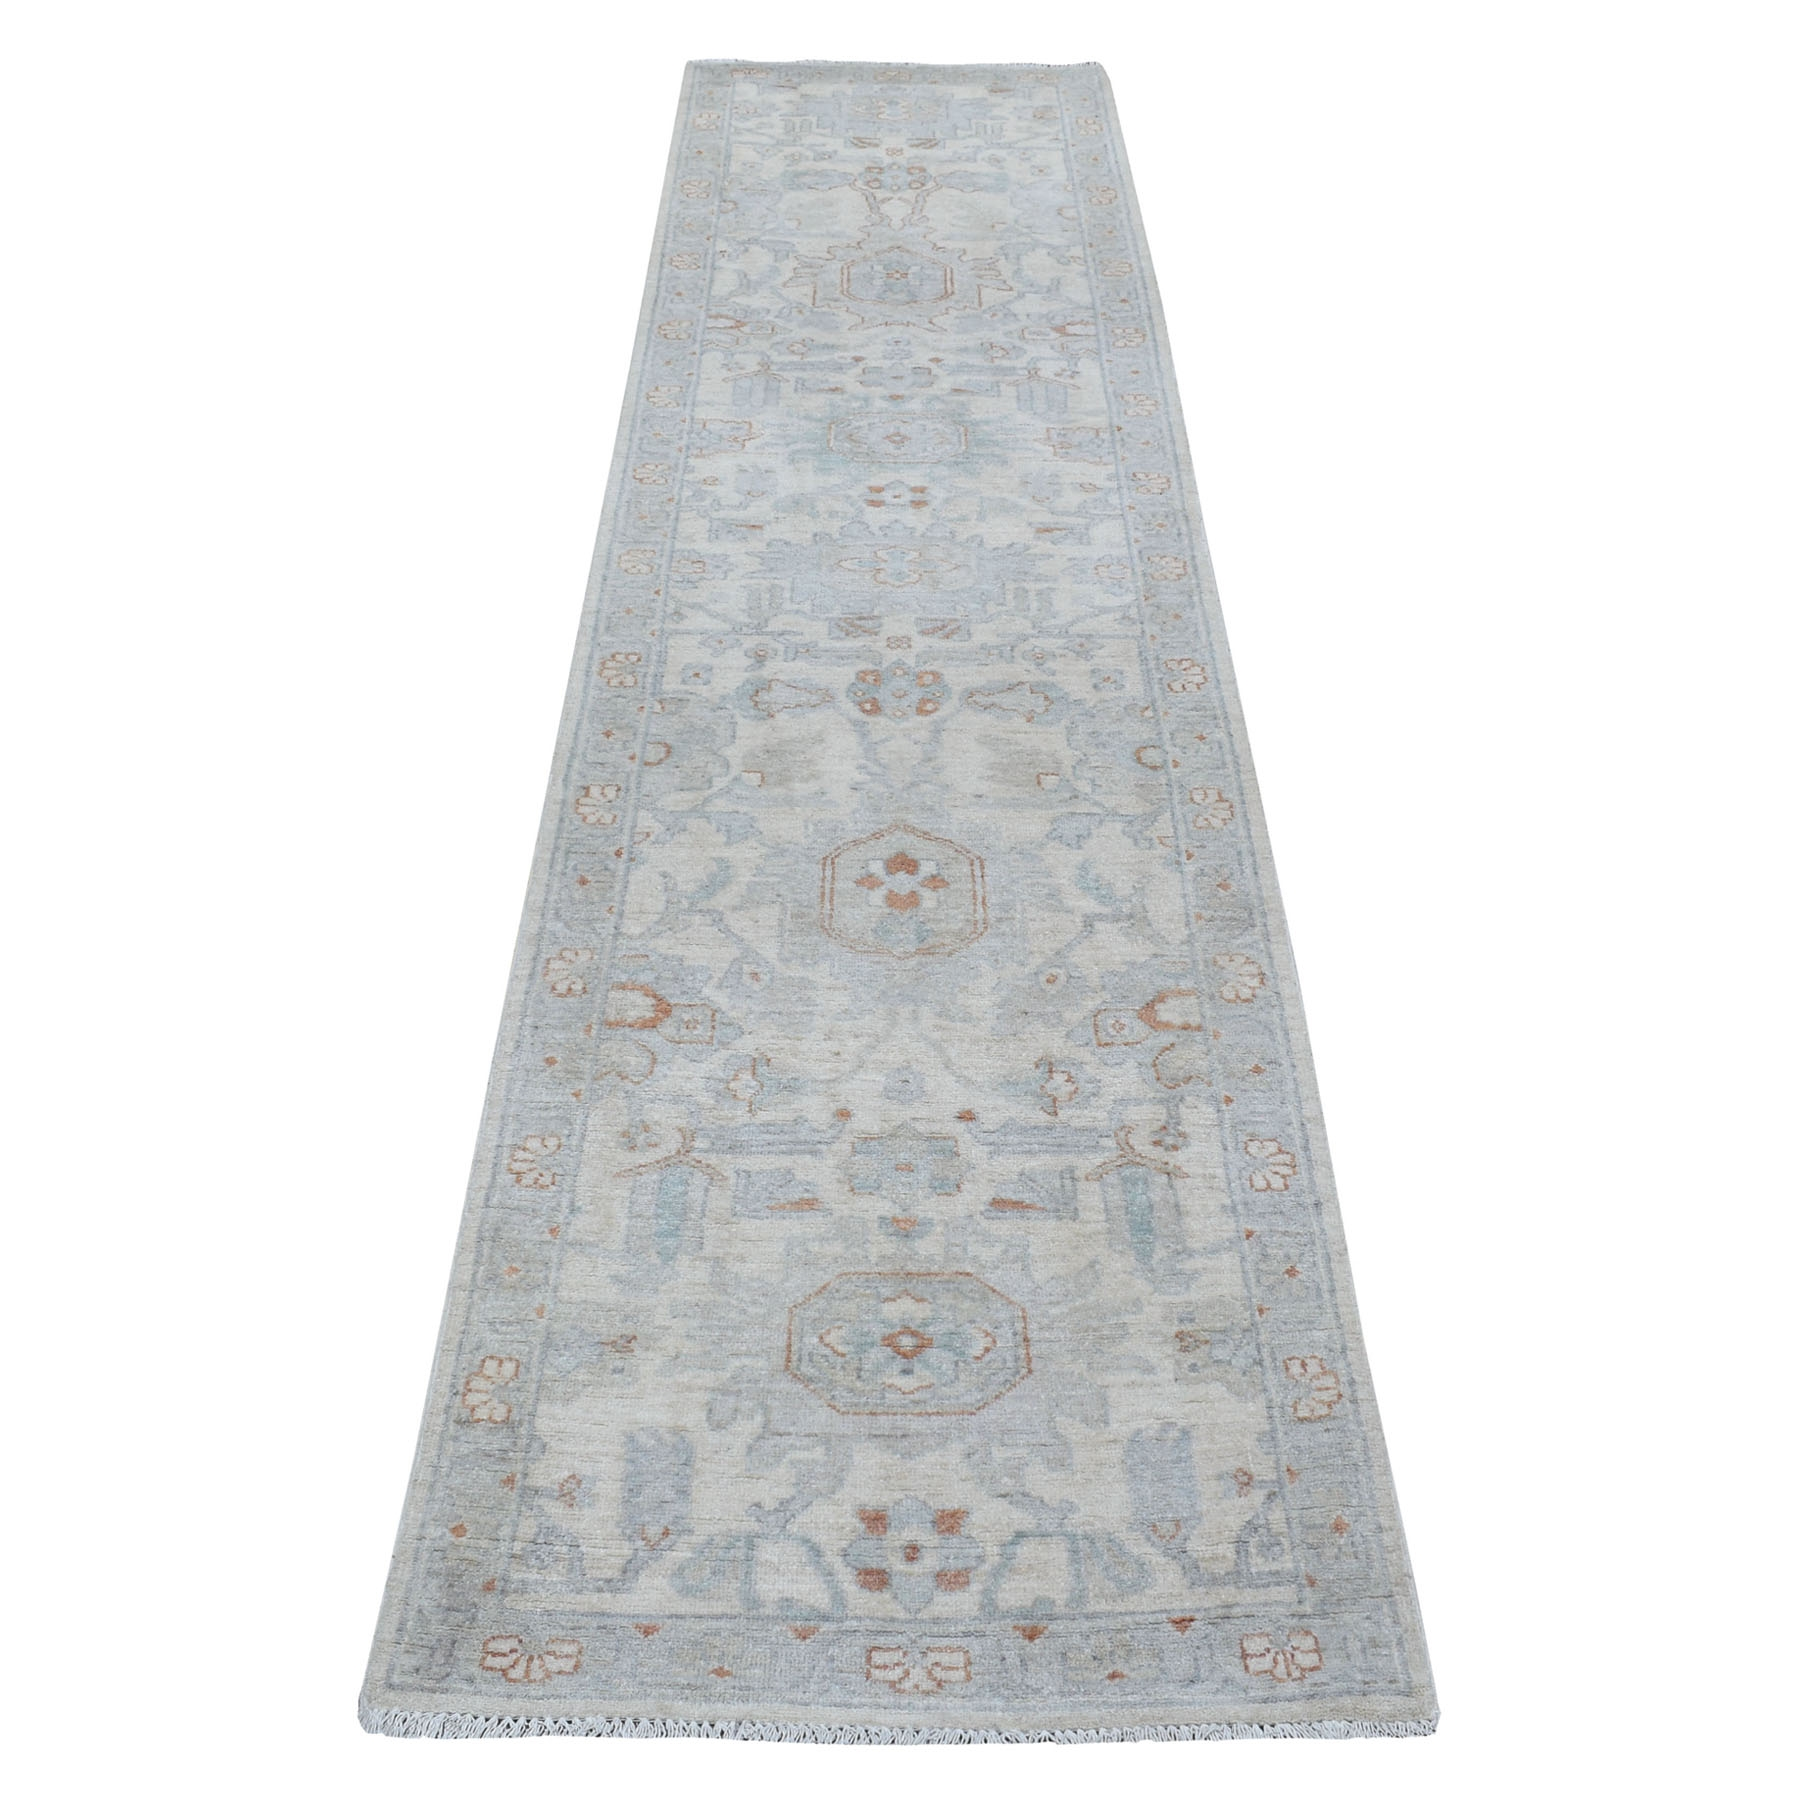 """2'5""""x9'10"""" Washed Out Peshawar Pure Wool Hand Knotted Oriental Runner Rug"""